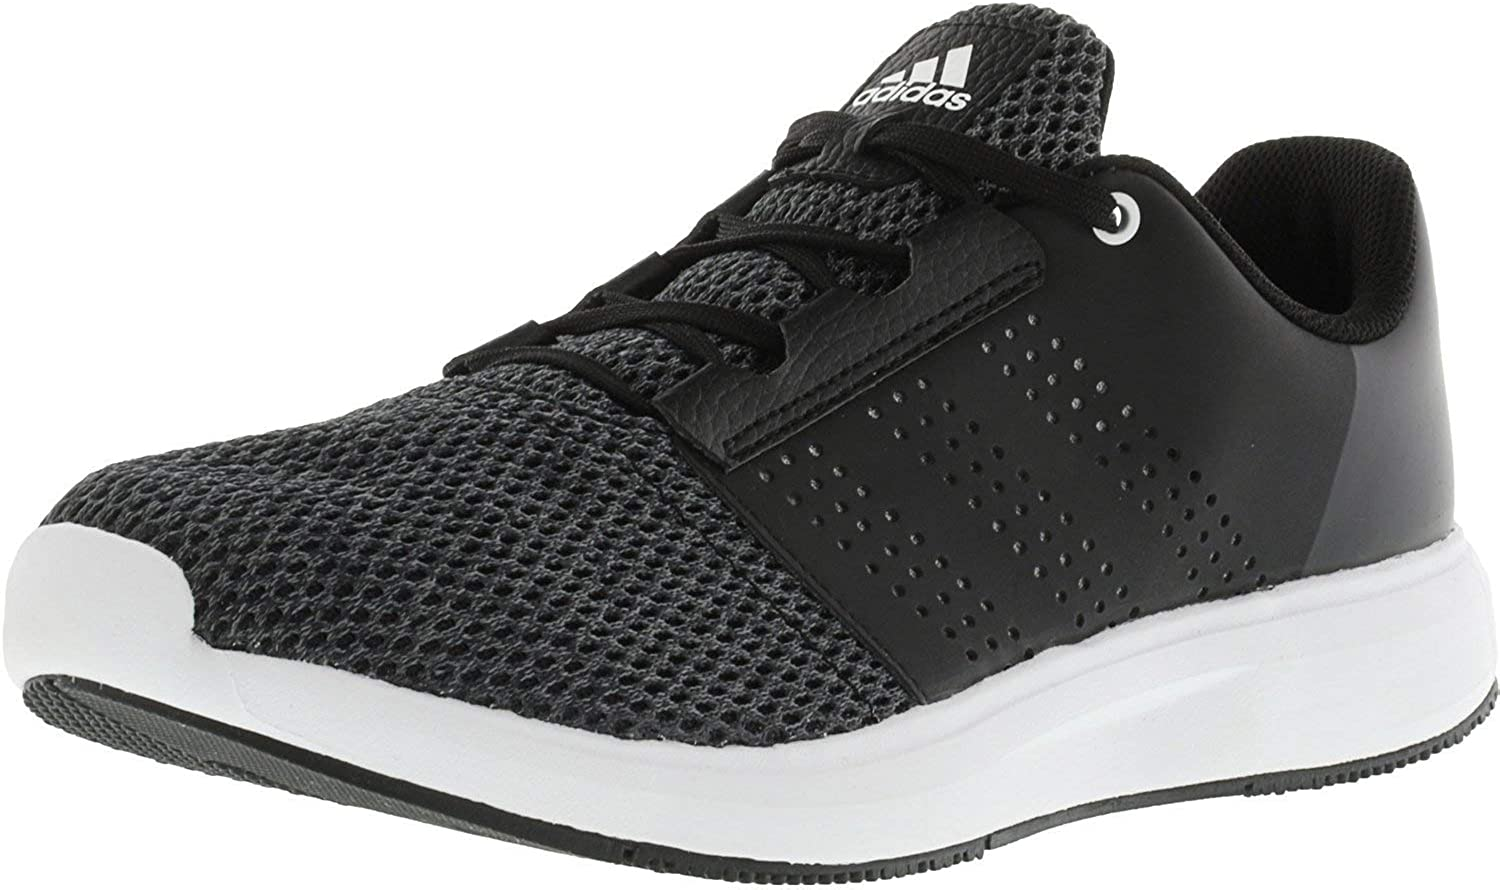 adidas Mens Madoru 2 M Running Shoes with Ortholite Insoles